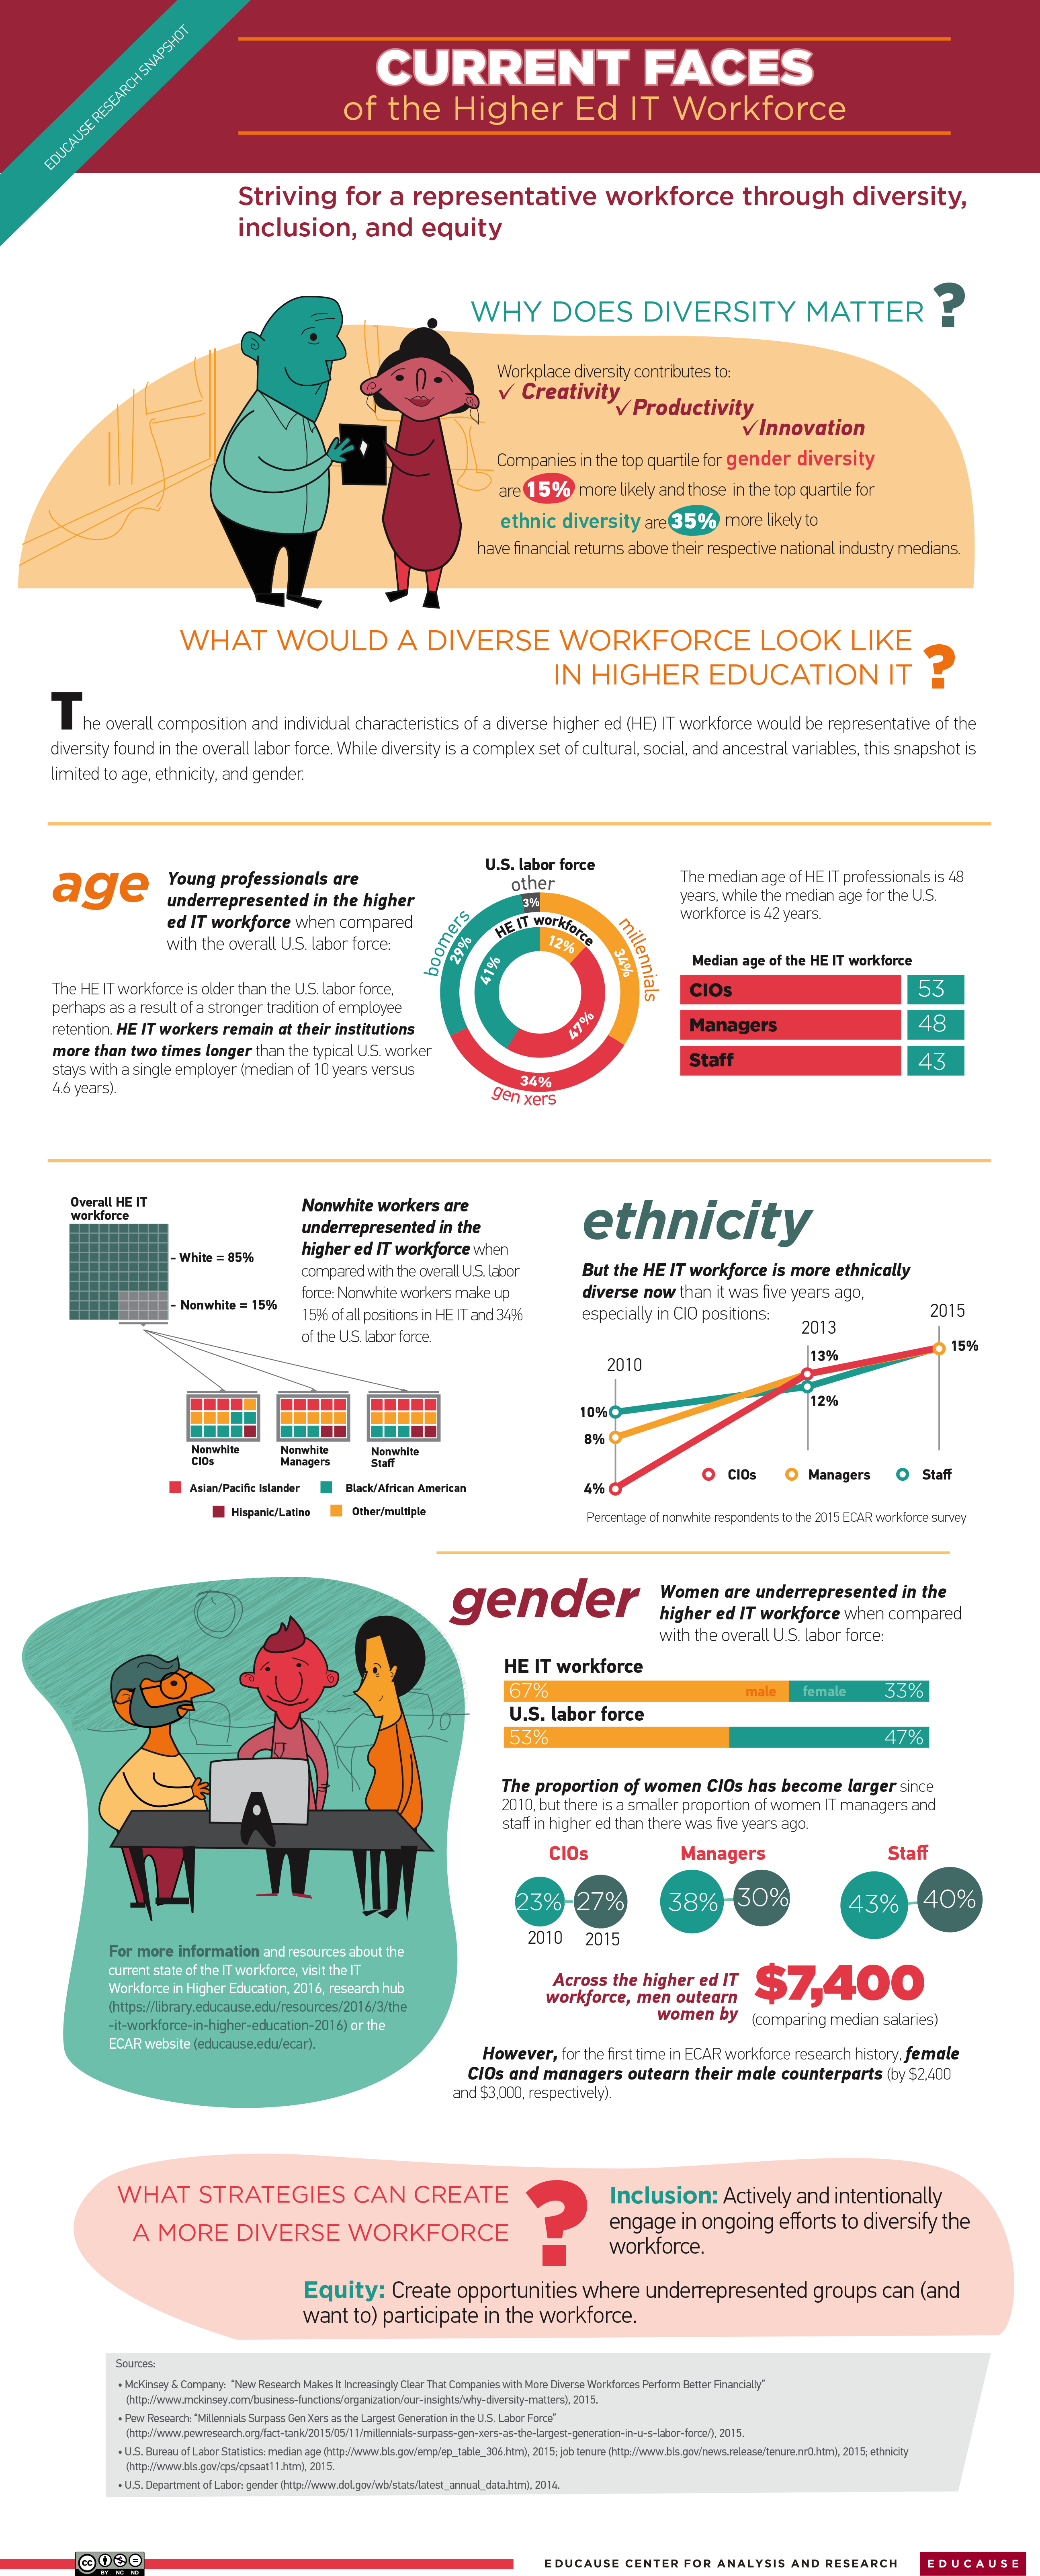 //er.educause.edu/articles/2016/5/educause-research-snapshot-current-faces-of-the-higher-ed-it-workforce